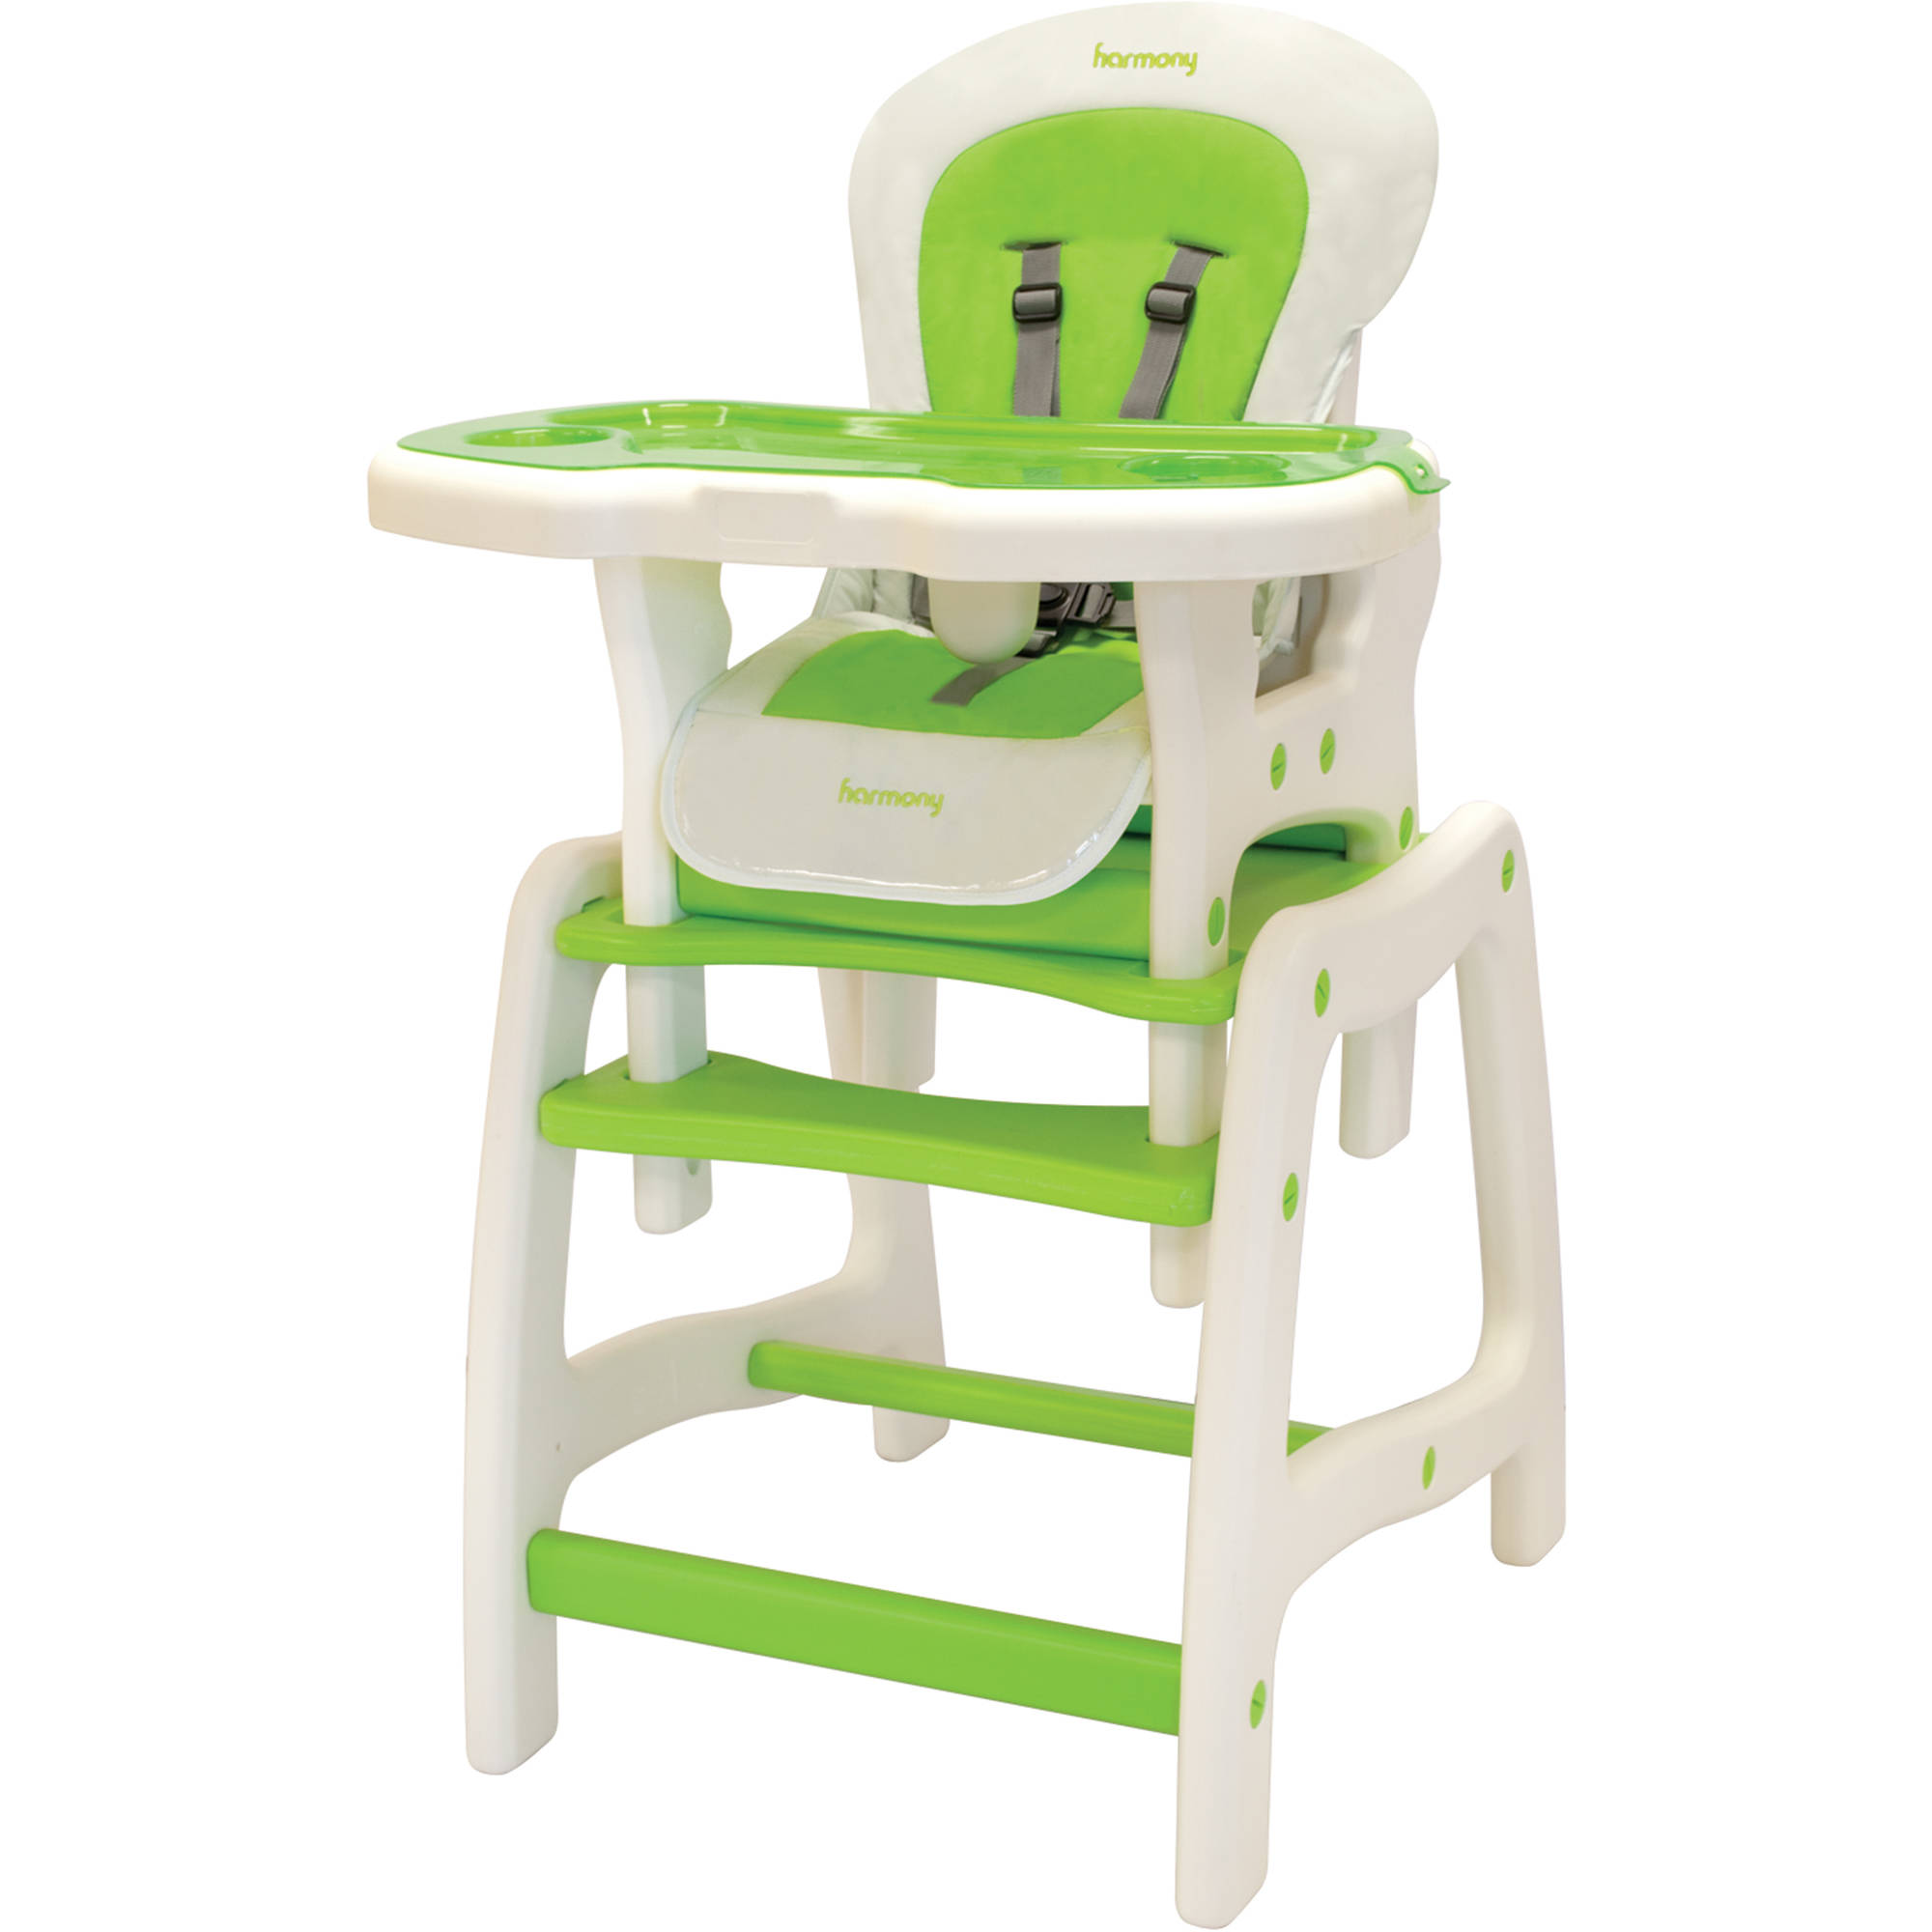 Eat & Play 4 in 1 bination High Chair Walmart